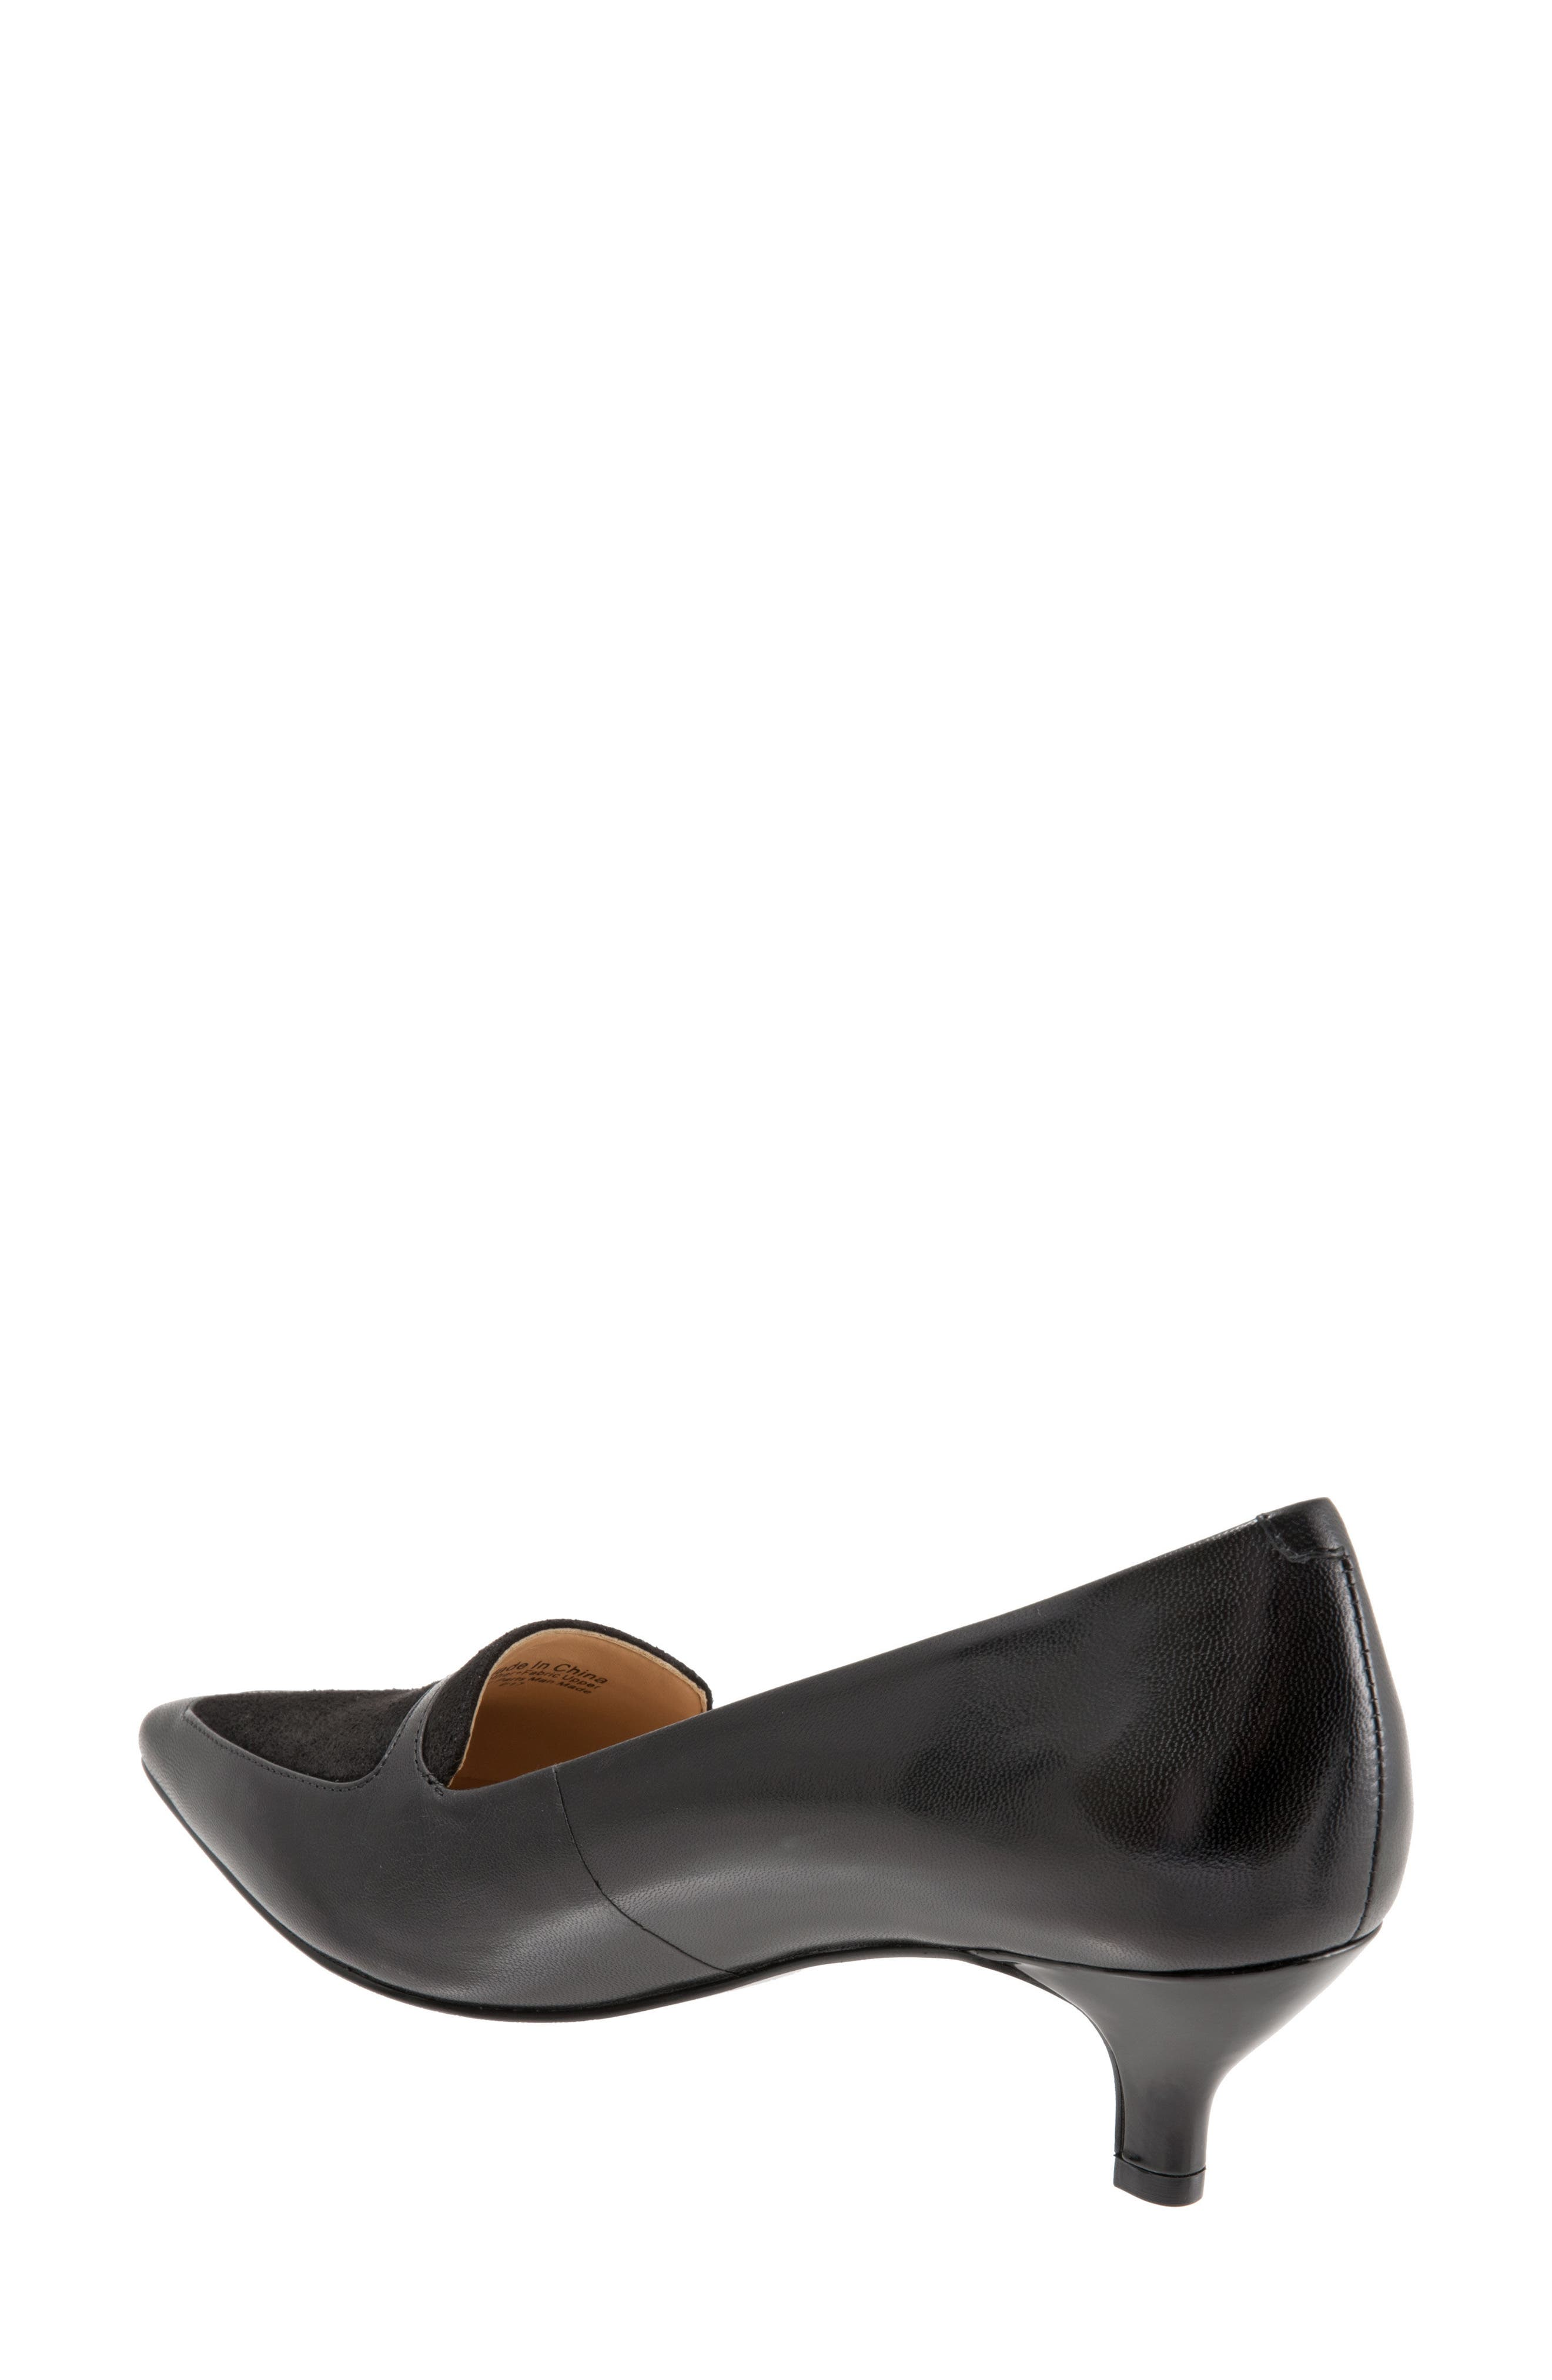 'Piper' Pointy Toe Pump,                             Alternate thumbnail 2, color,                             Black